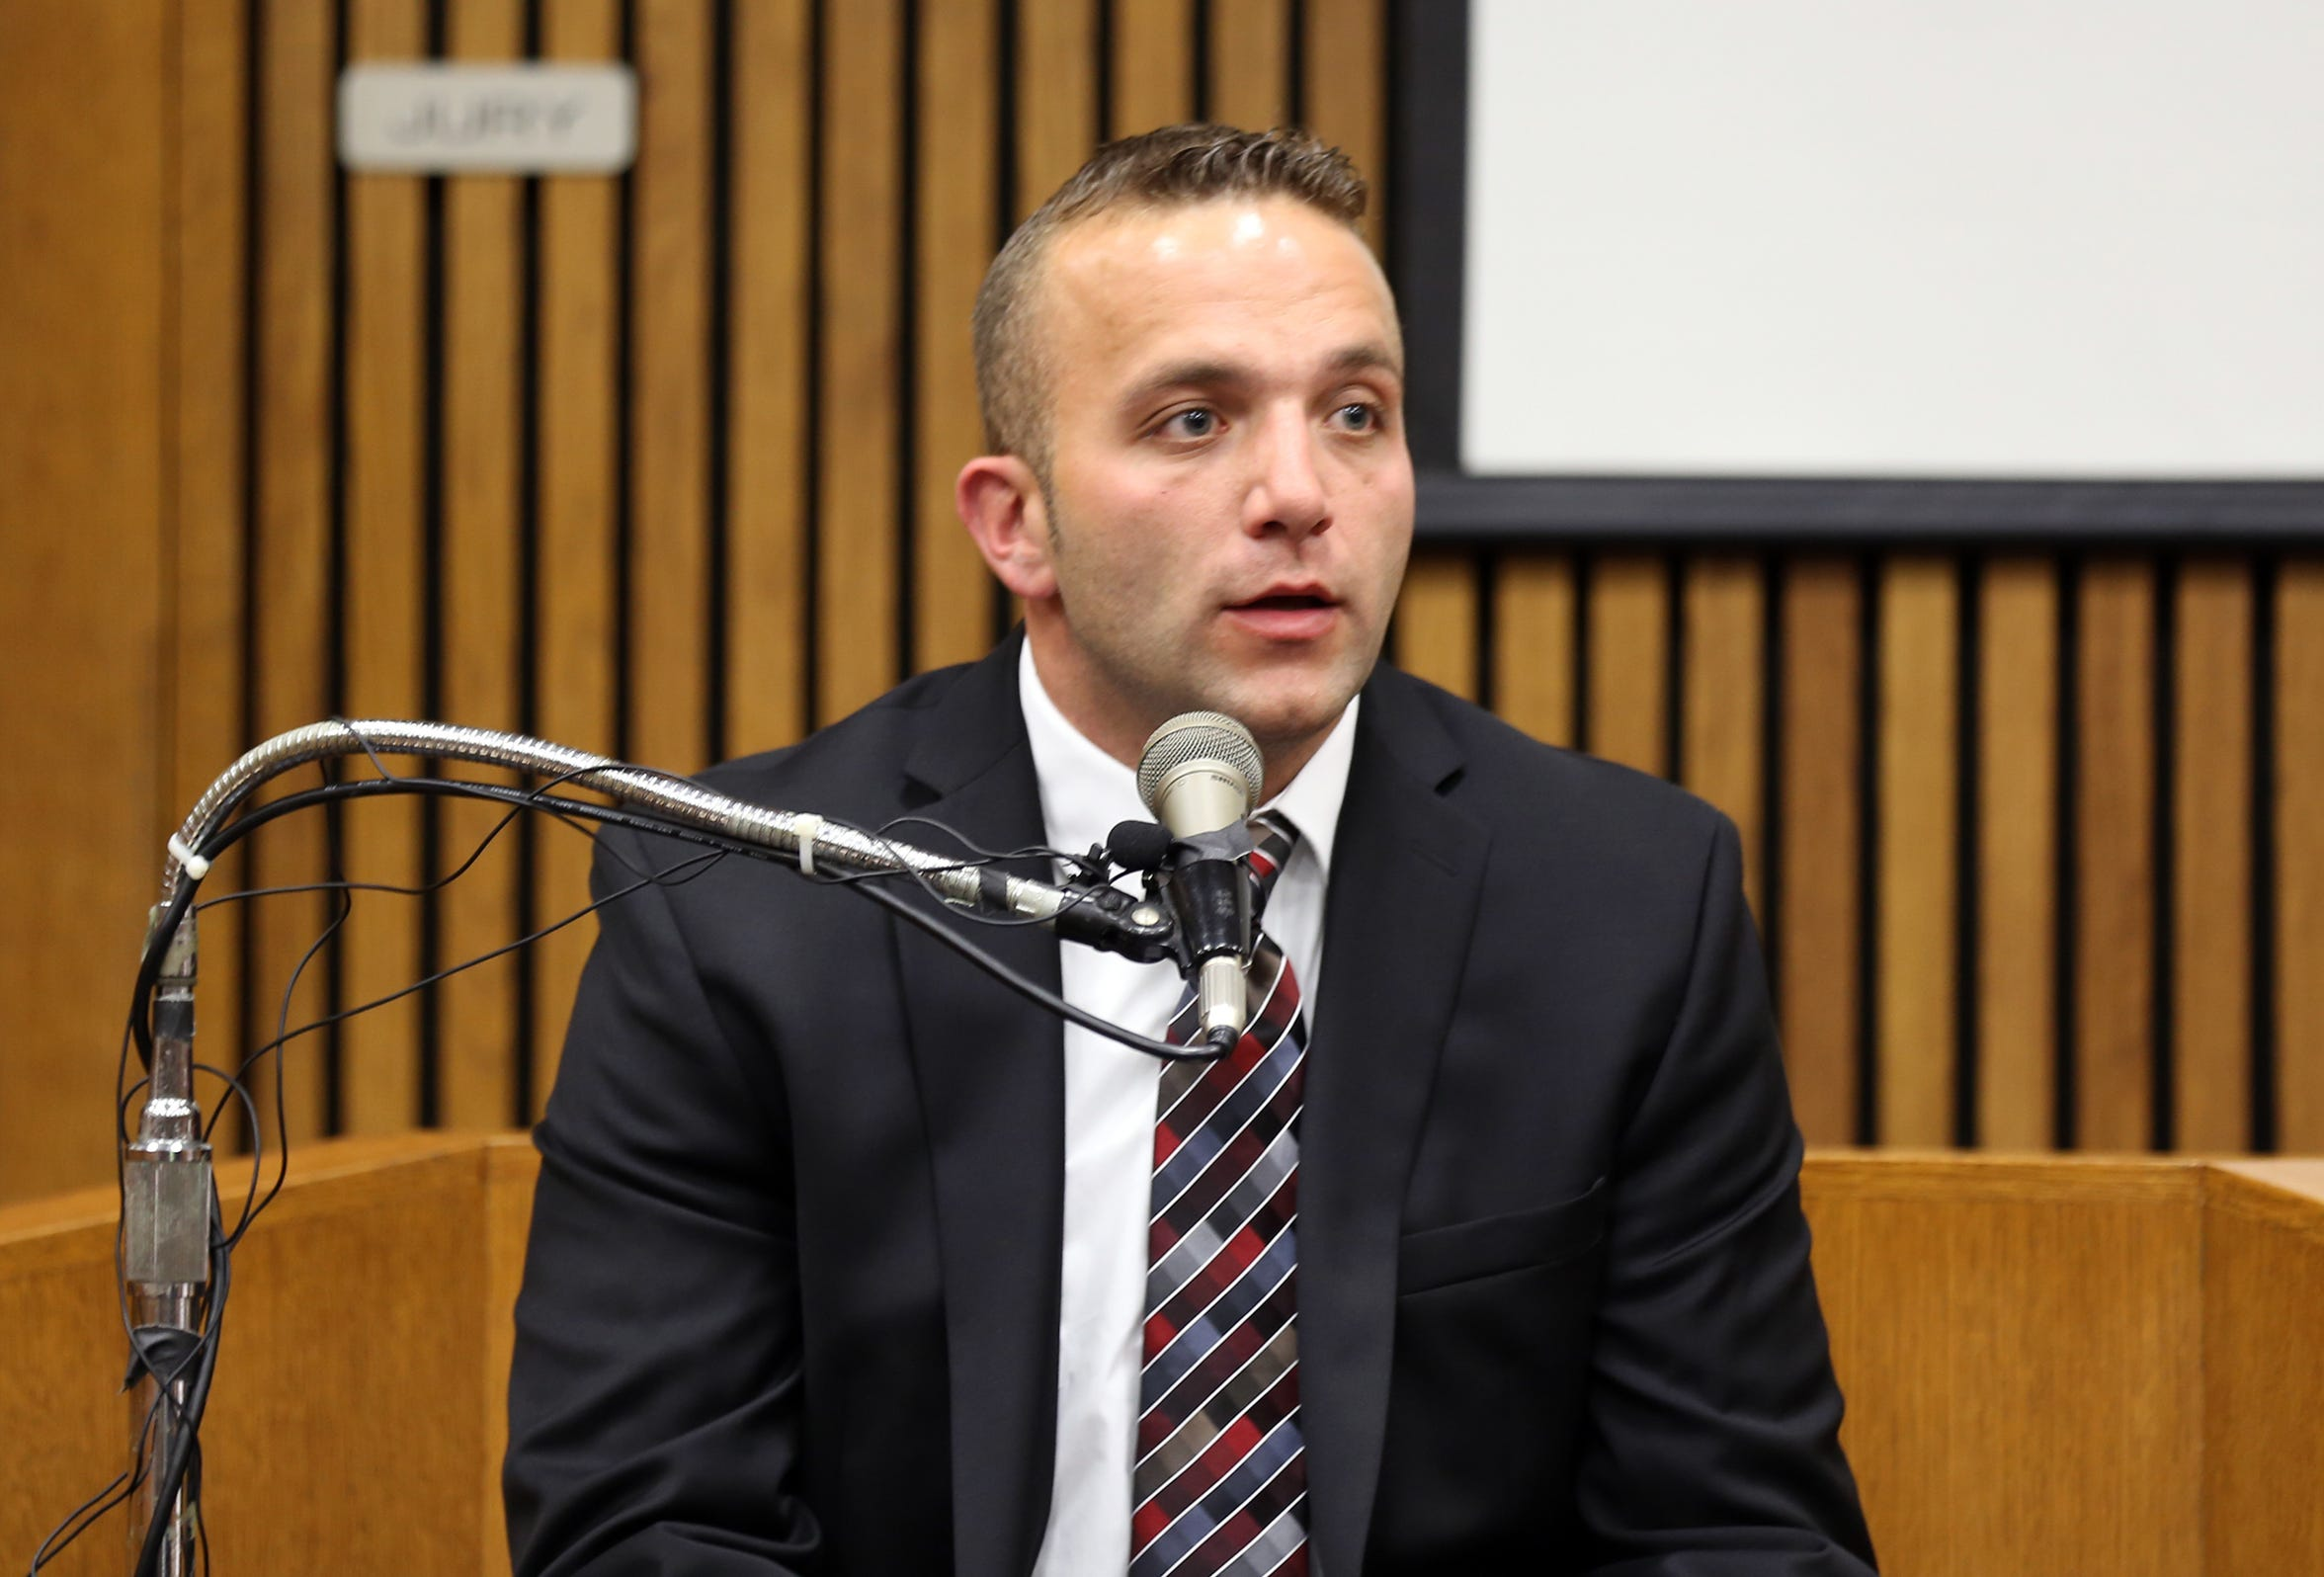 Former Inkster Auxiliary Officer John Zieleniewski testified during the trial of former Inkster police officer William Melendez in 2015.